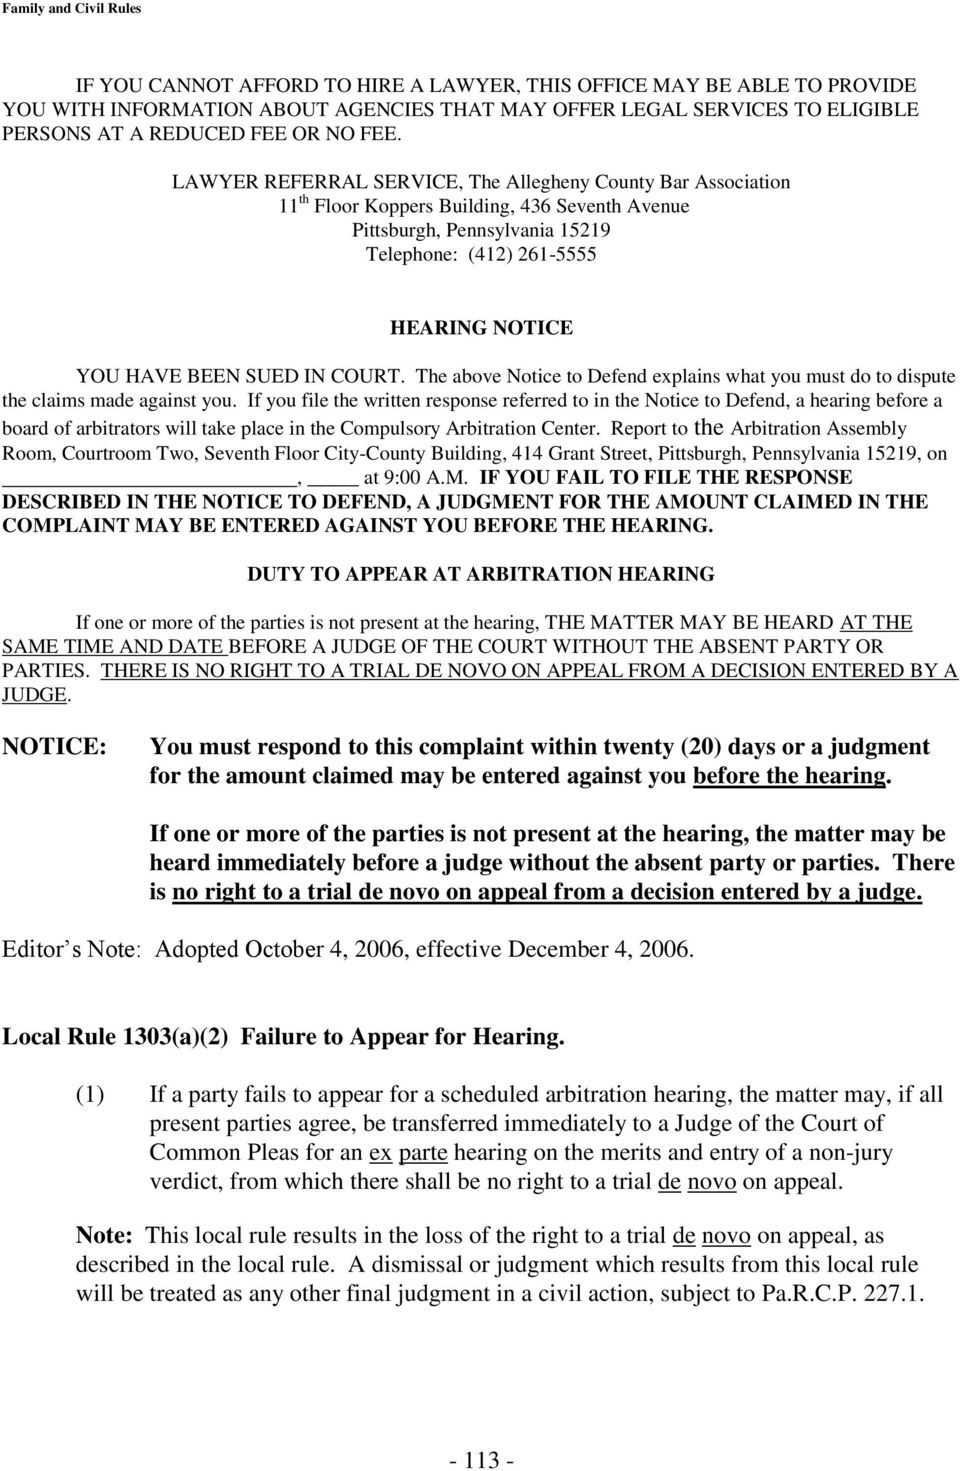 SUED IN COURT. The above Notice to Defend explains what you must do to dispute the claims made against you.